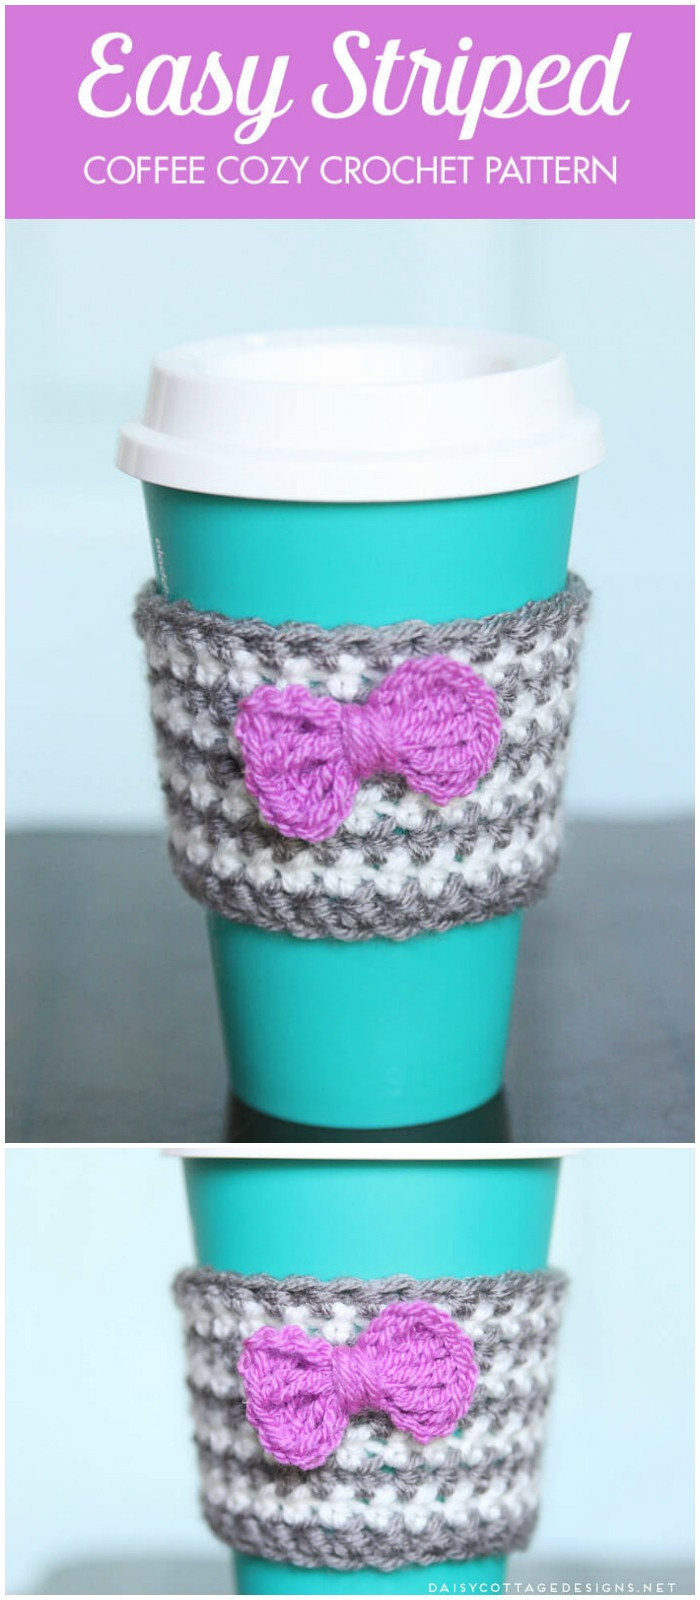 Crochet Coffee Cup Cozy Fresh 8 Crochet Cozy Patterns Free Crochet Patterns • Diy Home Of Crochet Coffee Cup Cozy Fresh 20 Cool Crochet Coffee Cozy Ideas & Tutorials Hative